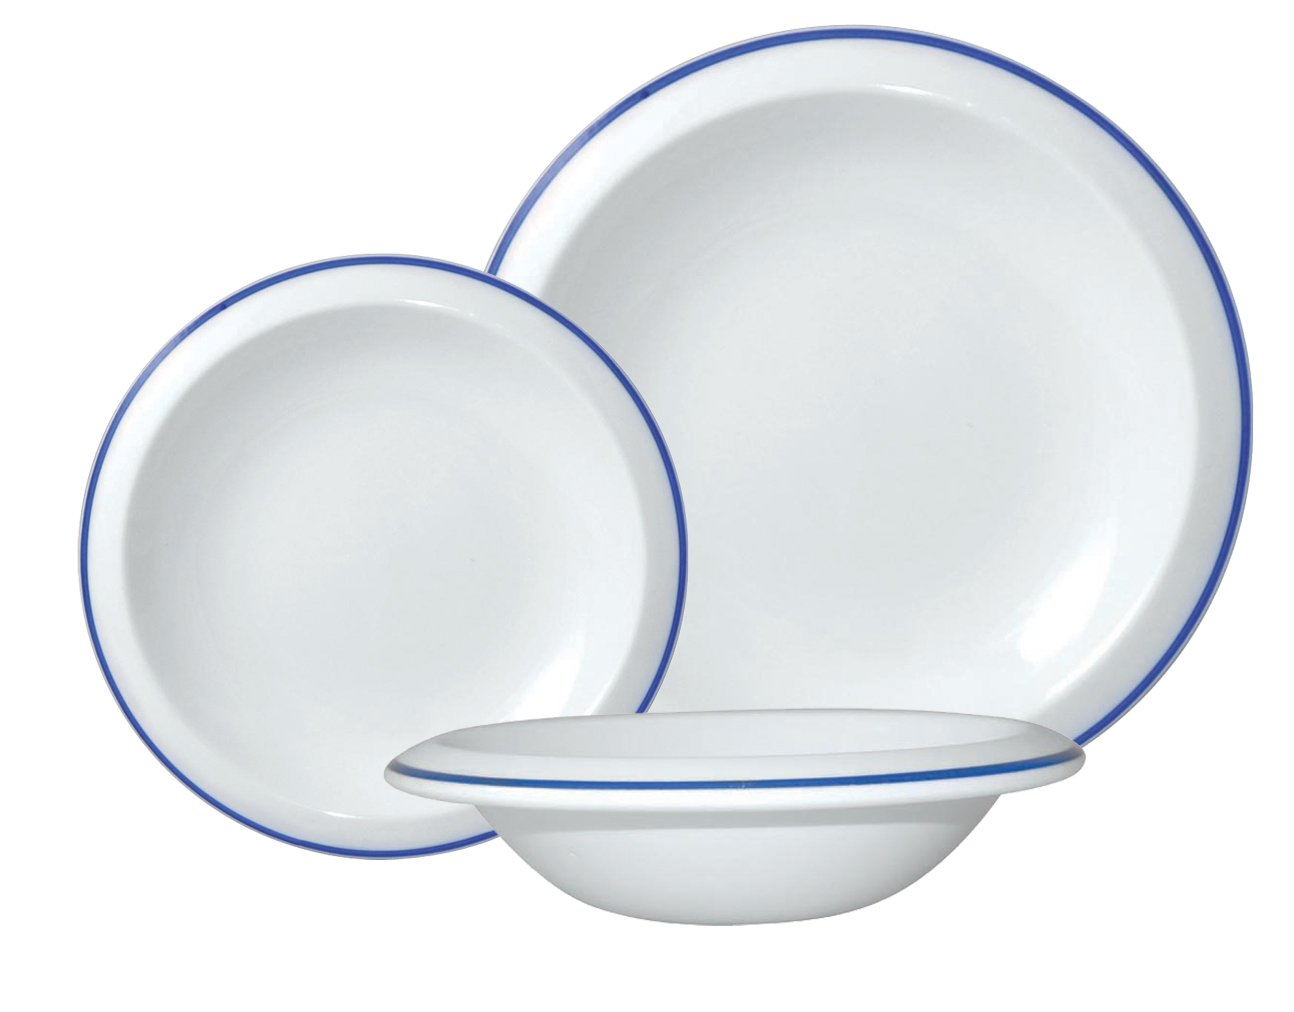 Amazon.com | Jamie Oliver Keeping It Simple 12-Piece Dinnerware Set Blue Dinnerware Sets  sc 1 st  Amazon.com & Amazon.com | Jamie Oliver Keeping It Simple 12-Piece Dinnerware Set ...